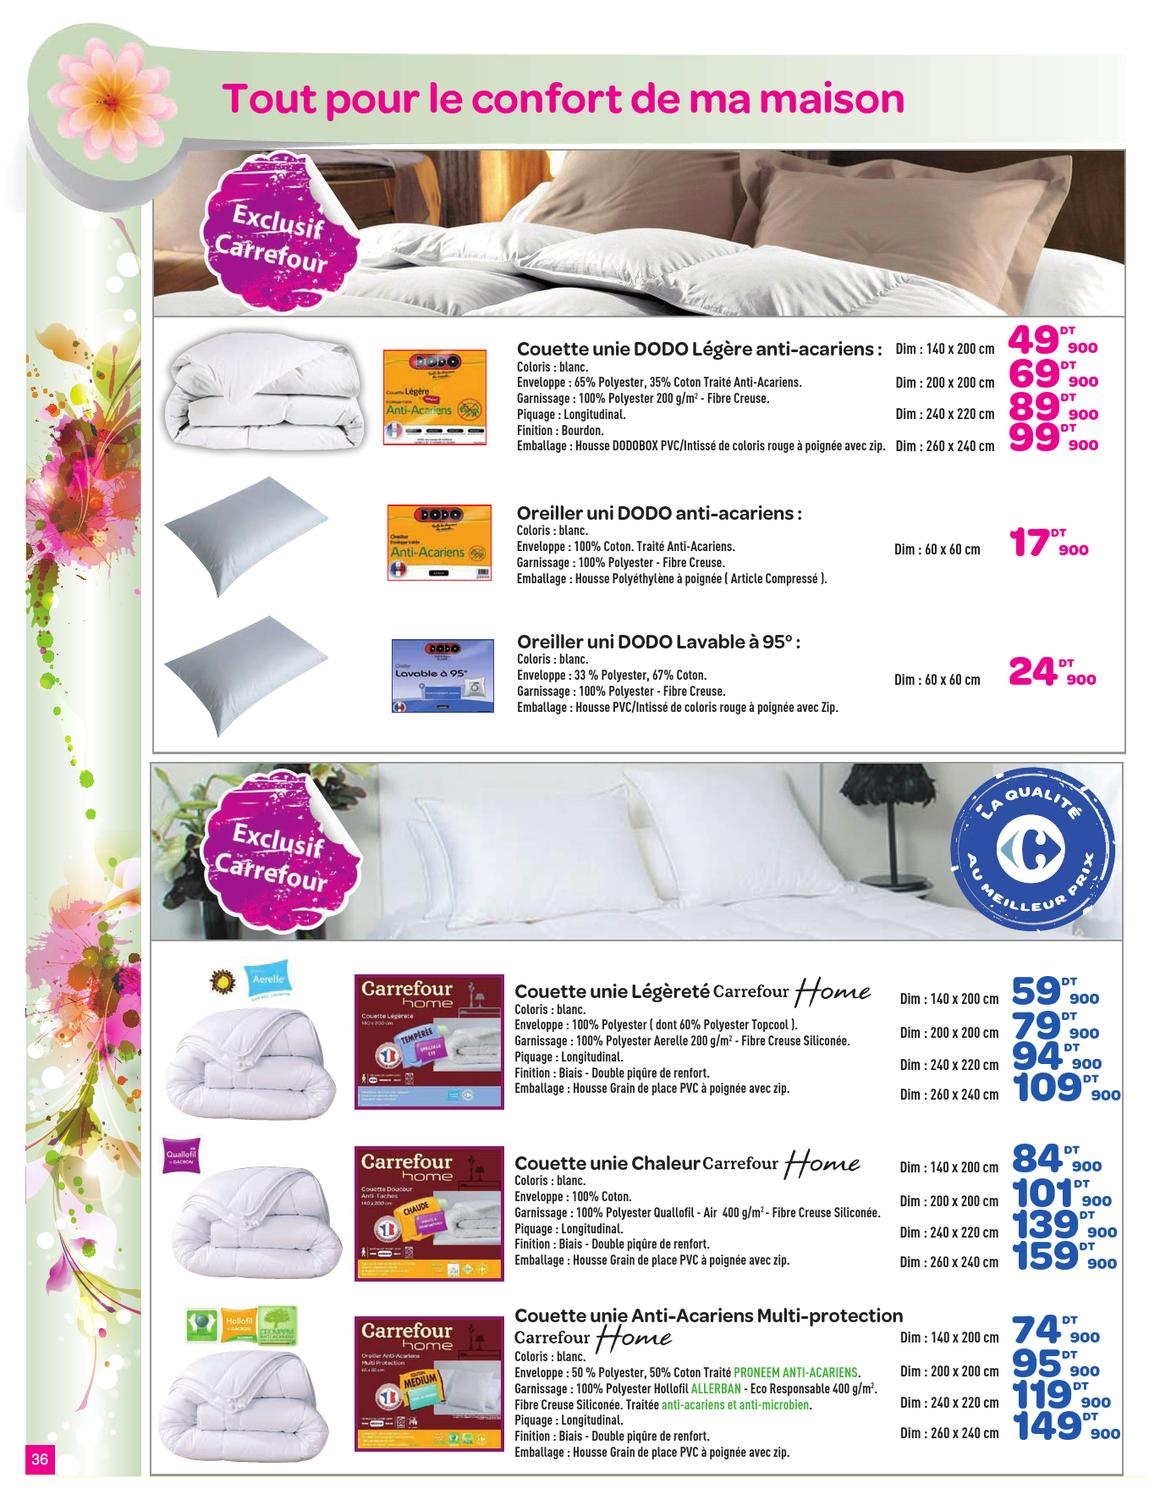 Couette Legere 100 G M2 Catalogue Carrefour - Des Prix Foot By Carrefour Tunisie